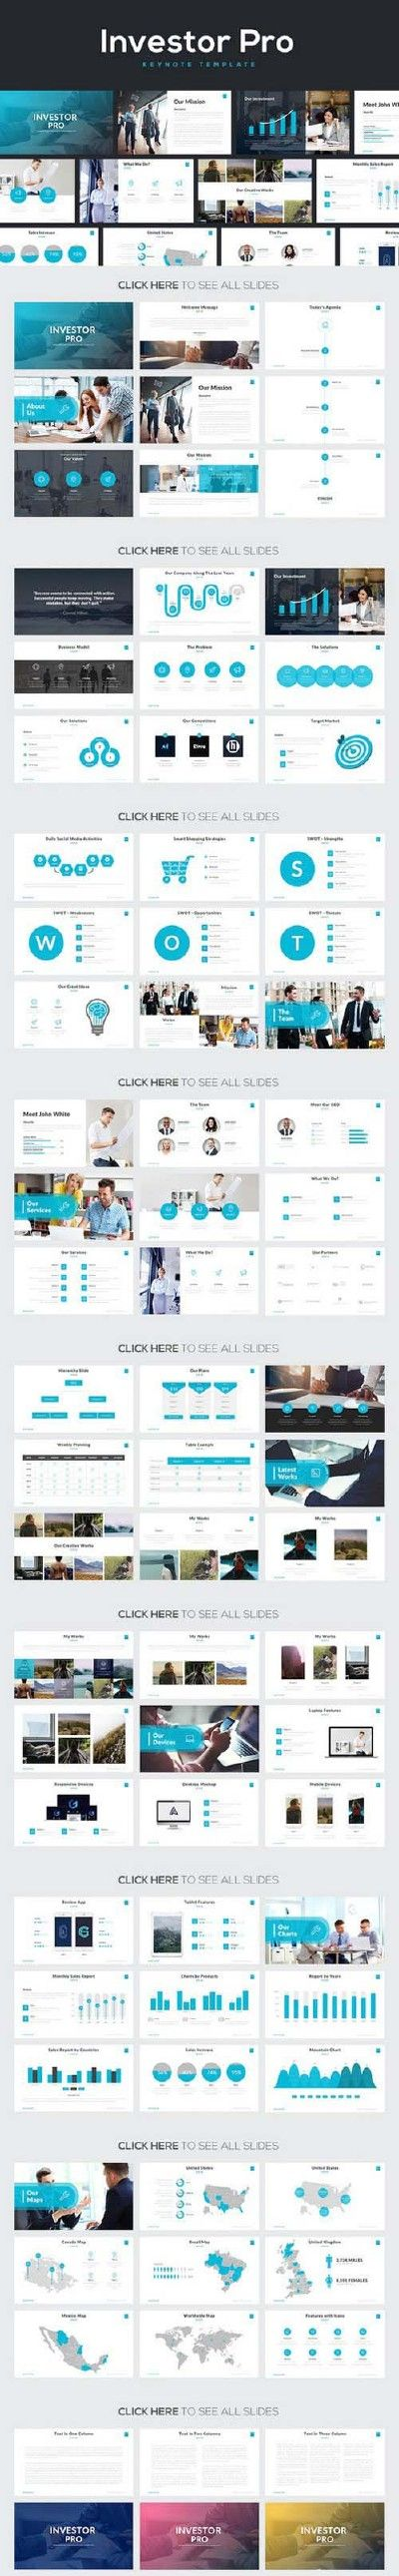 28 best powerpoint template images on pinterest editorial design investor pro keynote template 729588 alramifo Choice Image